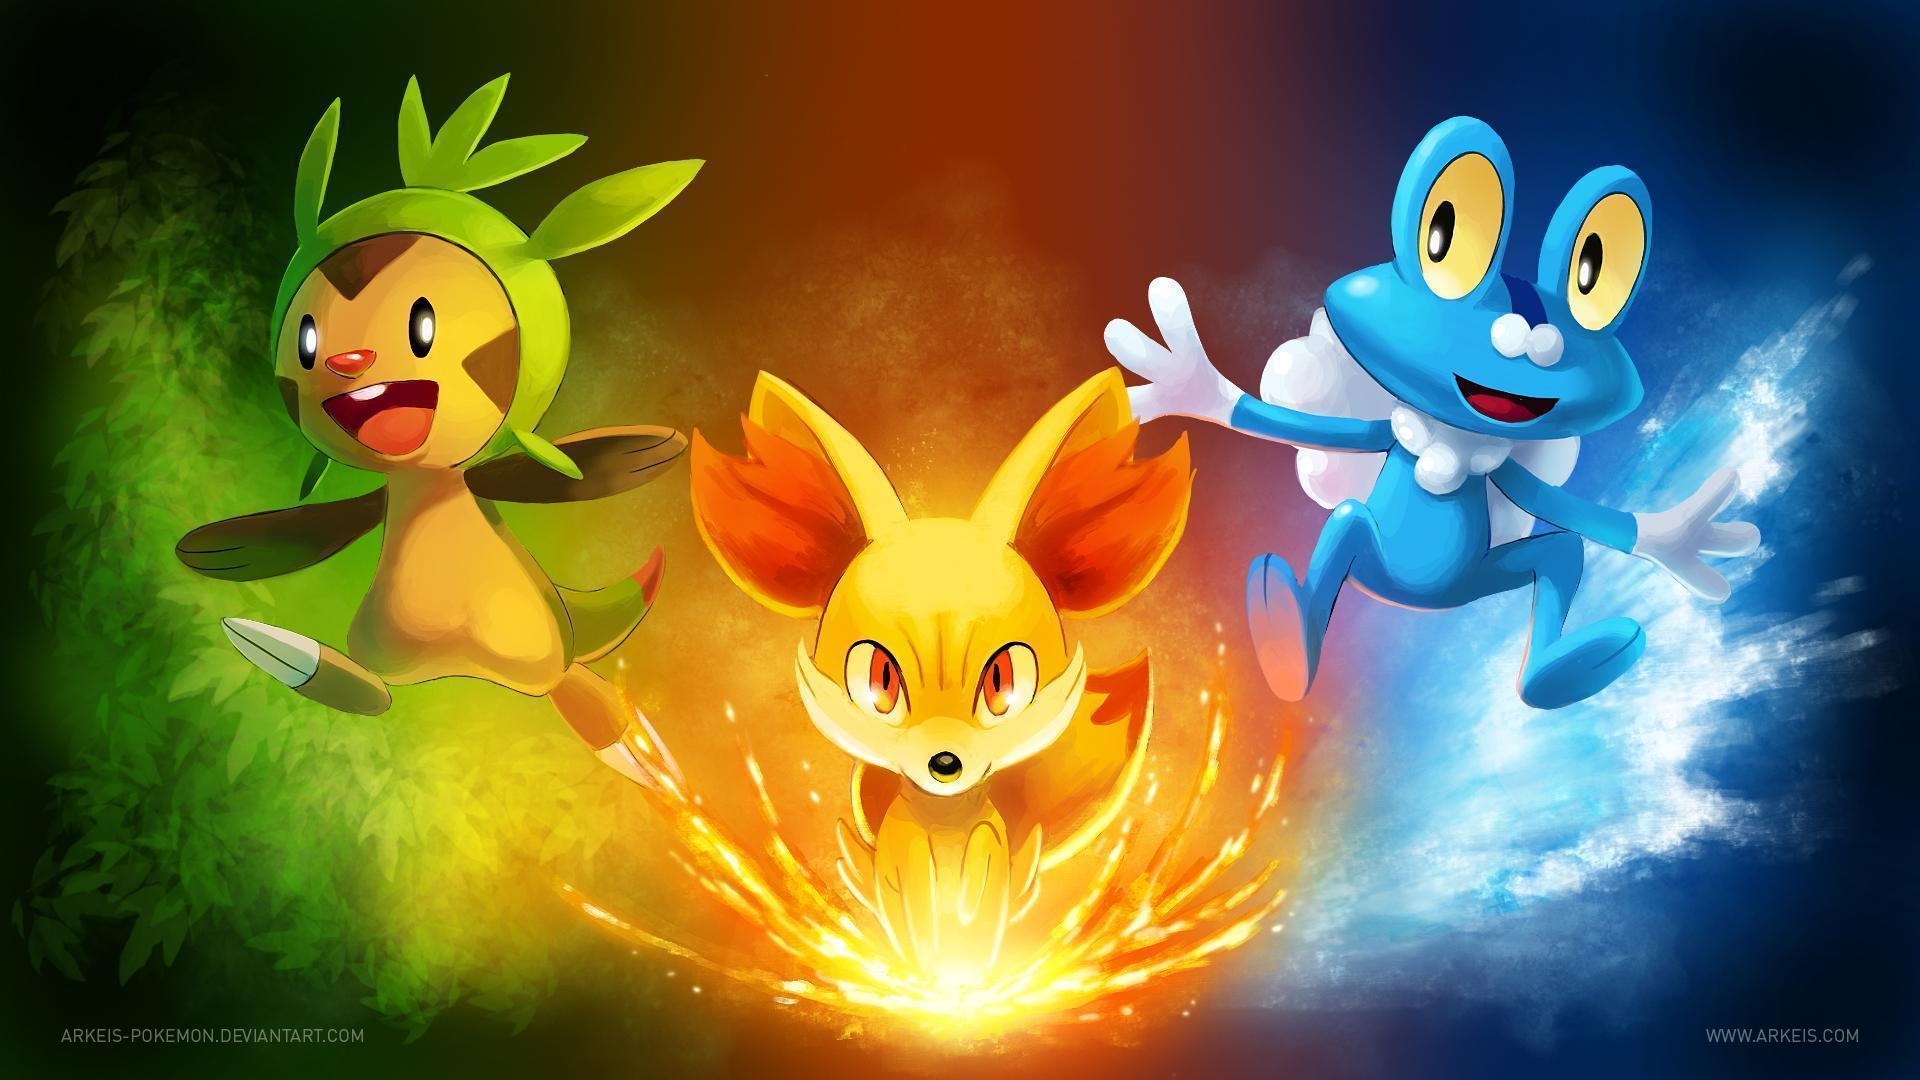 Pokemon X and Y HD Desktop Wallpapers 1920x1080 1080p hd wallpapers